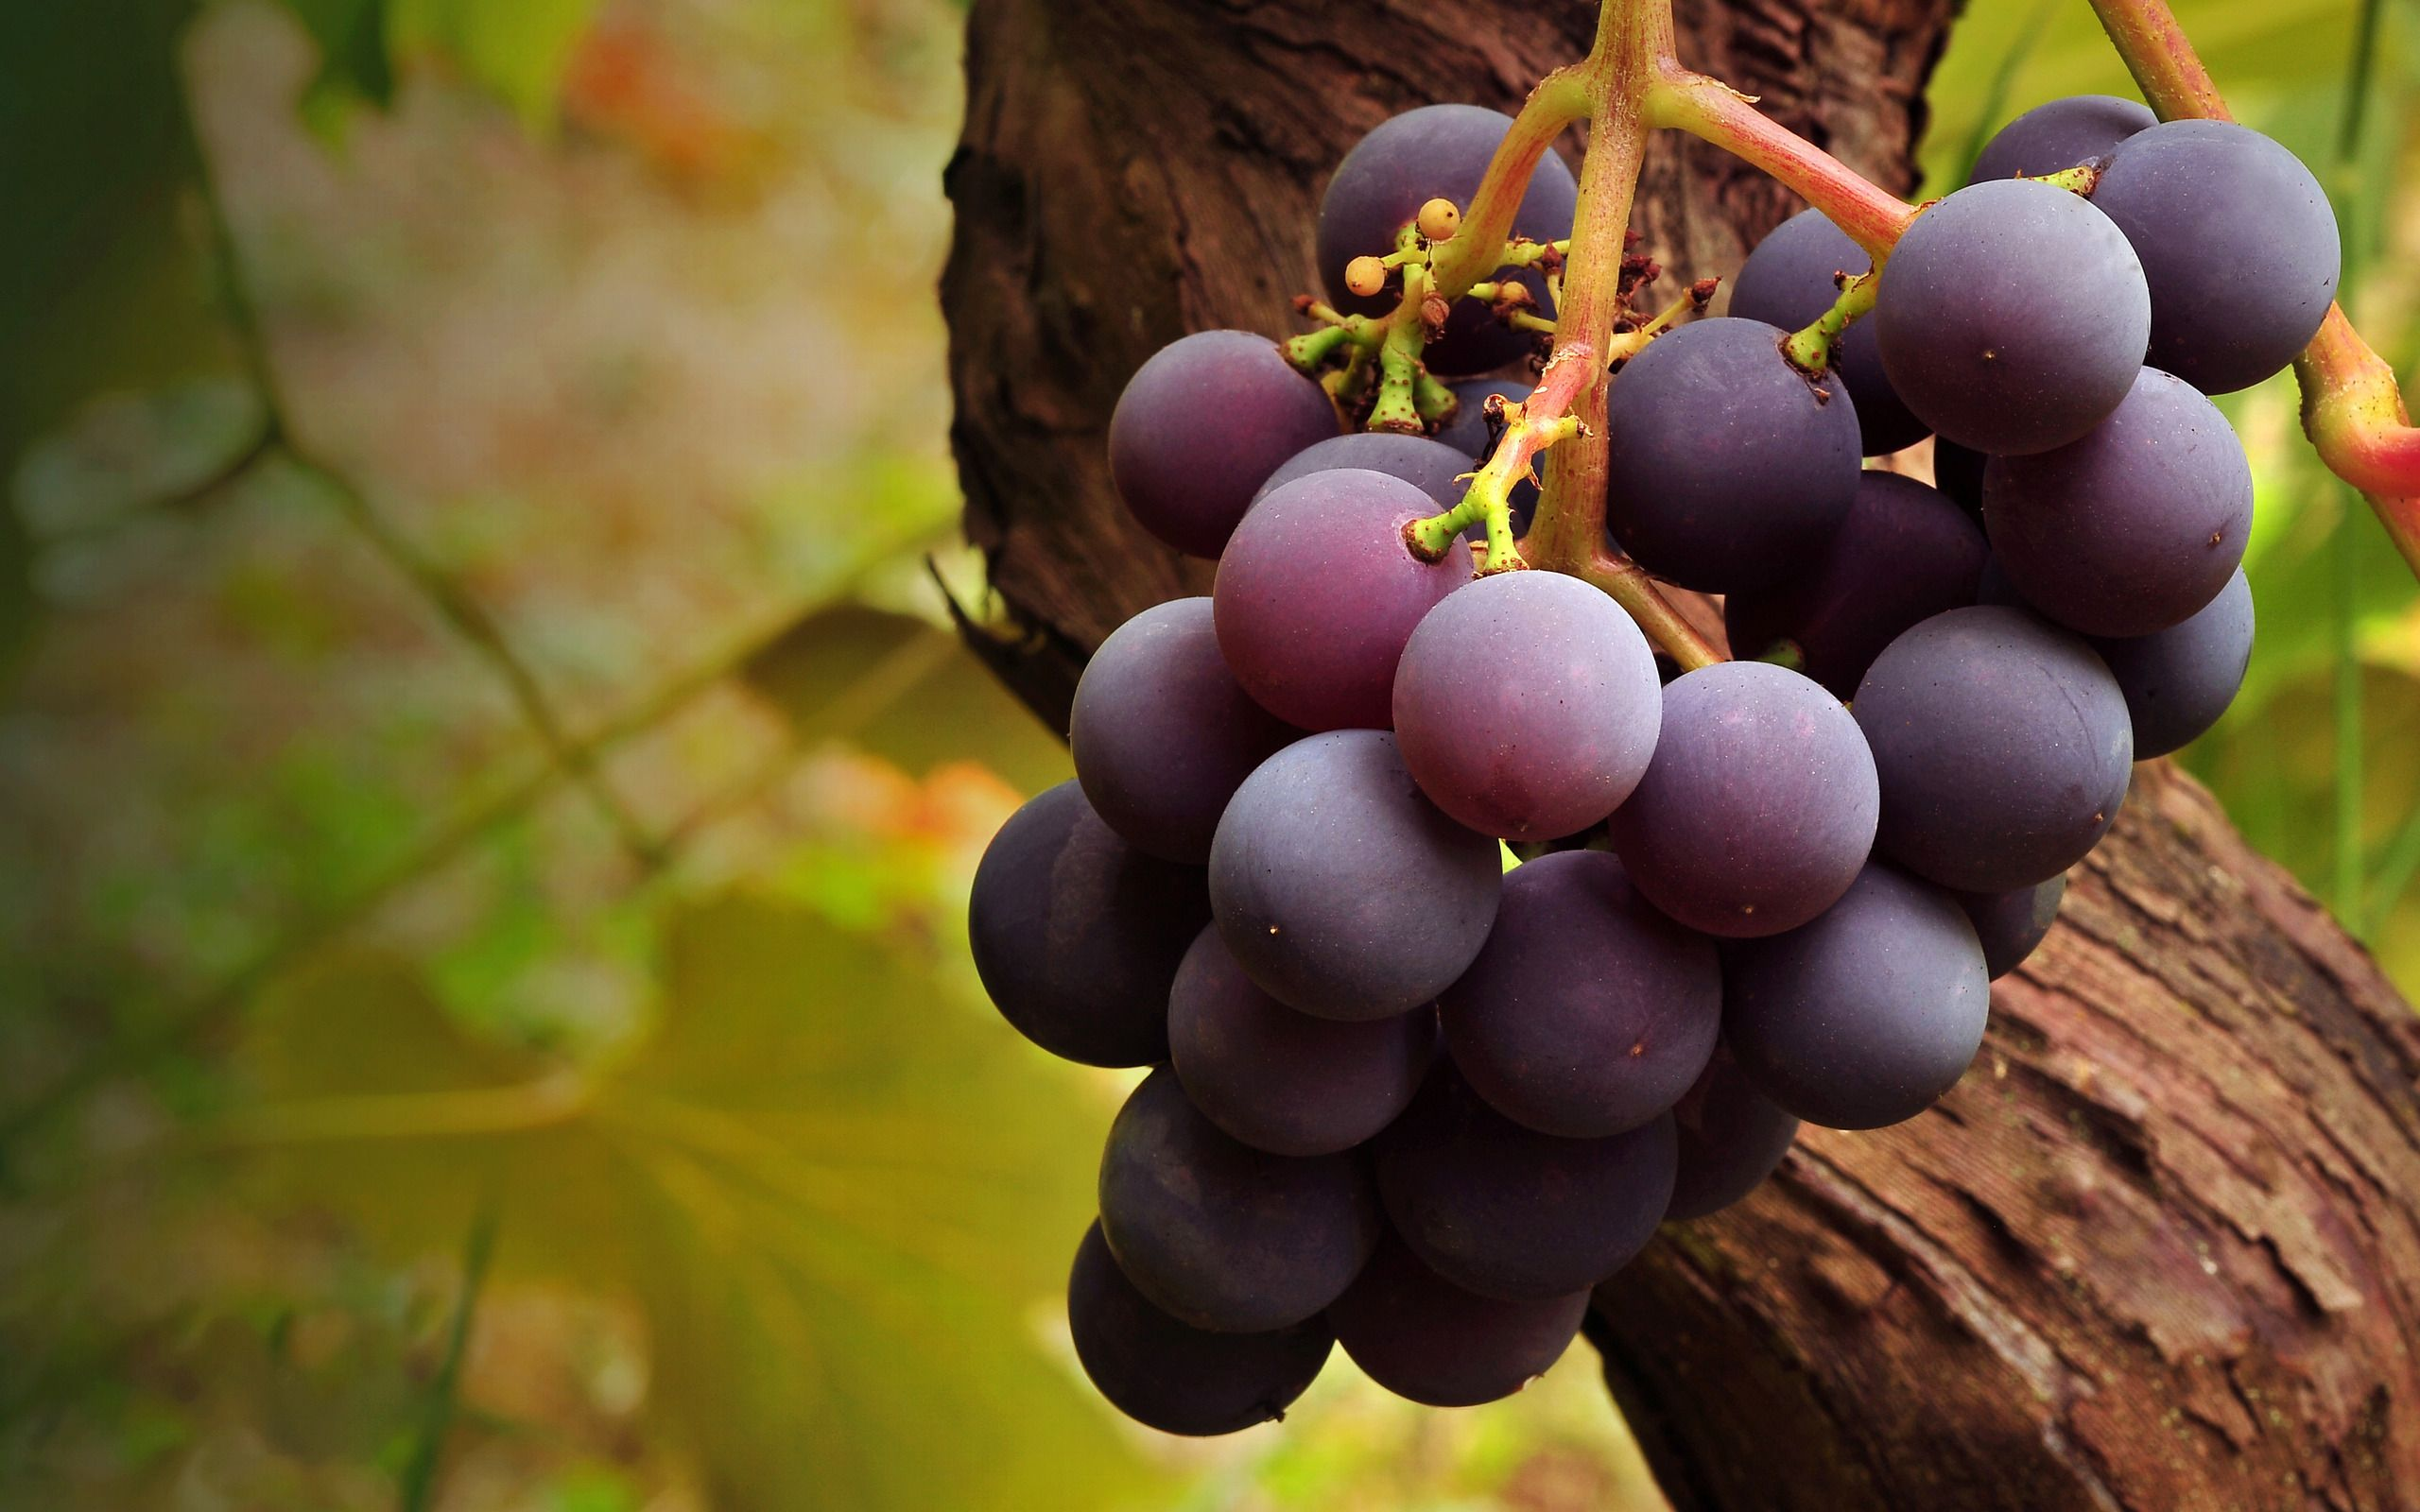 Grapes Wallpapers Hd Wallpapers Laptop Wallpapers Green Grapes Nutrition Grape Wallpaper Grapes